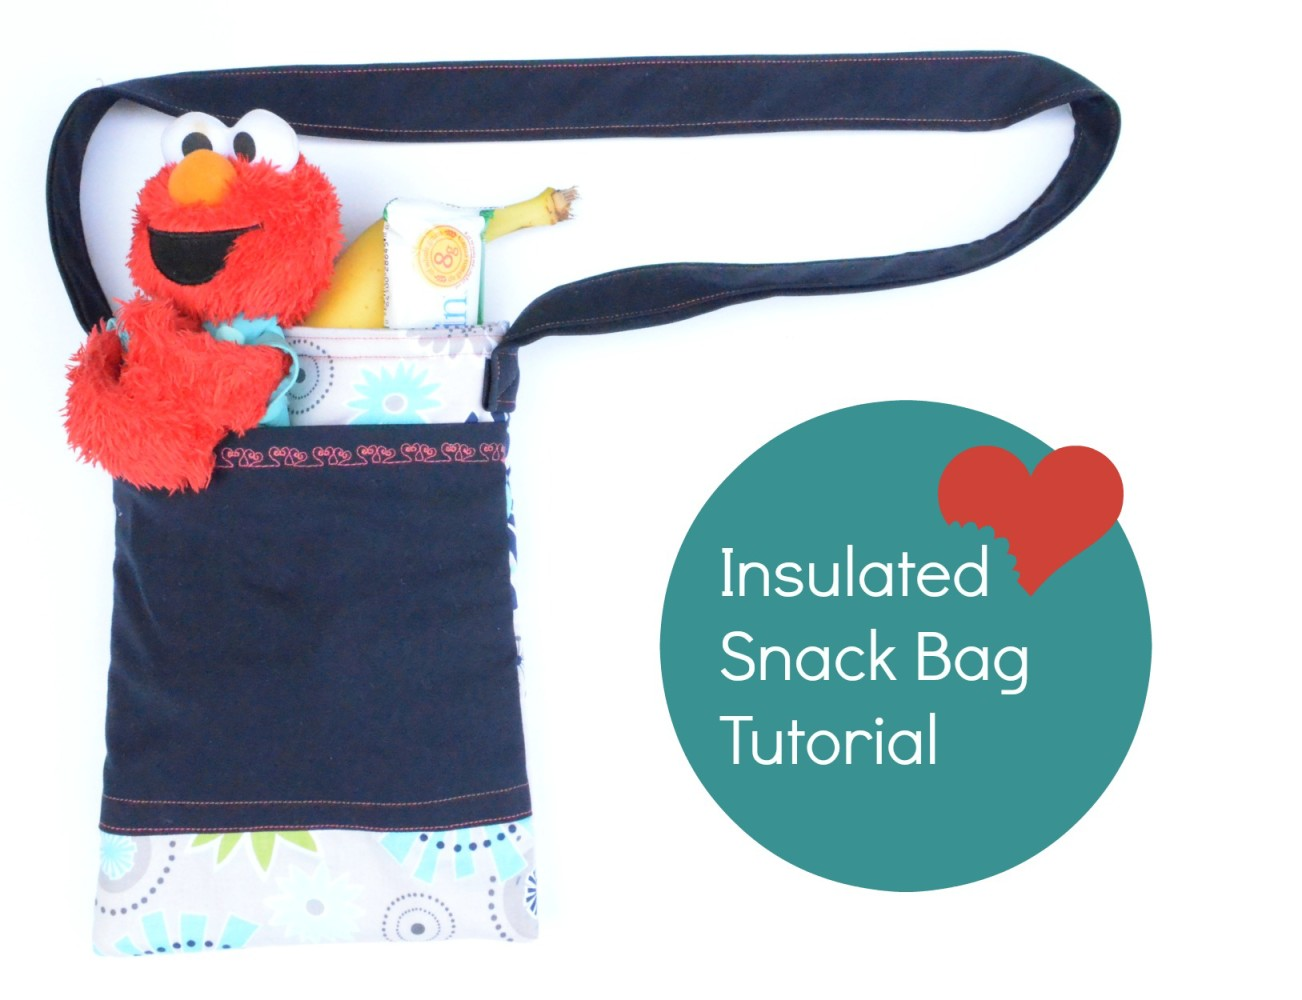 Insulated Snack bag